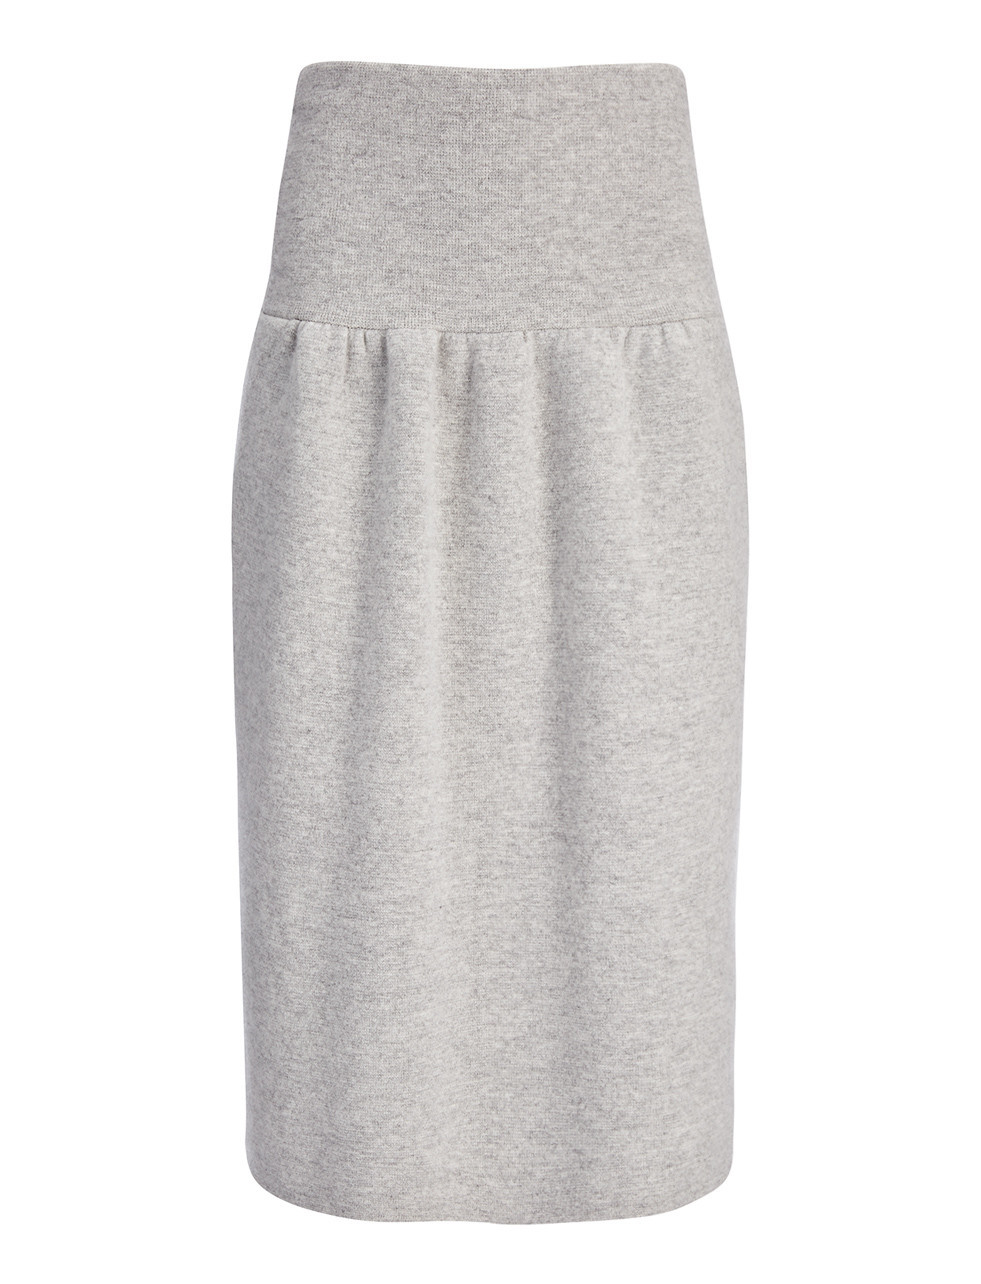 Compact Boiled Knit Skirt In Marble - length: below the knee; pattern: plain; style: straight; fit: loose/voluminous; waist: high rise; predominant colour: light grey; occasions: casual, creative work; fibres: wool - 100%; texture group: knits/crochet; pattern type: fabric; season: s/s 2016; wardrobe: basic